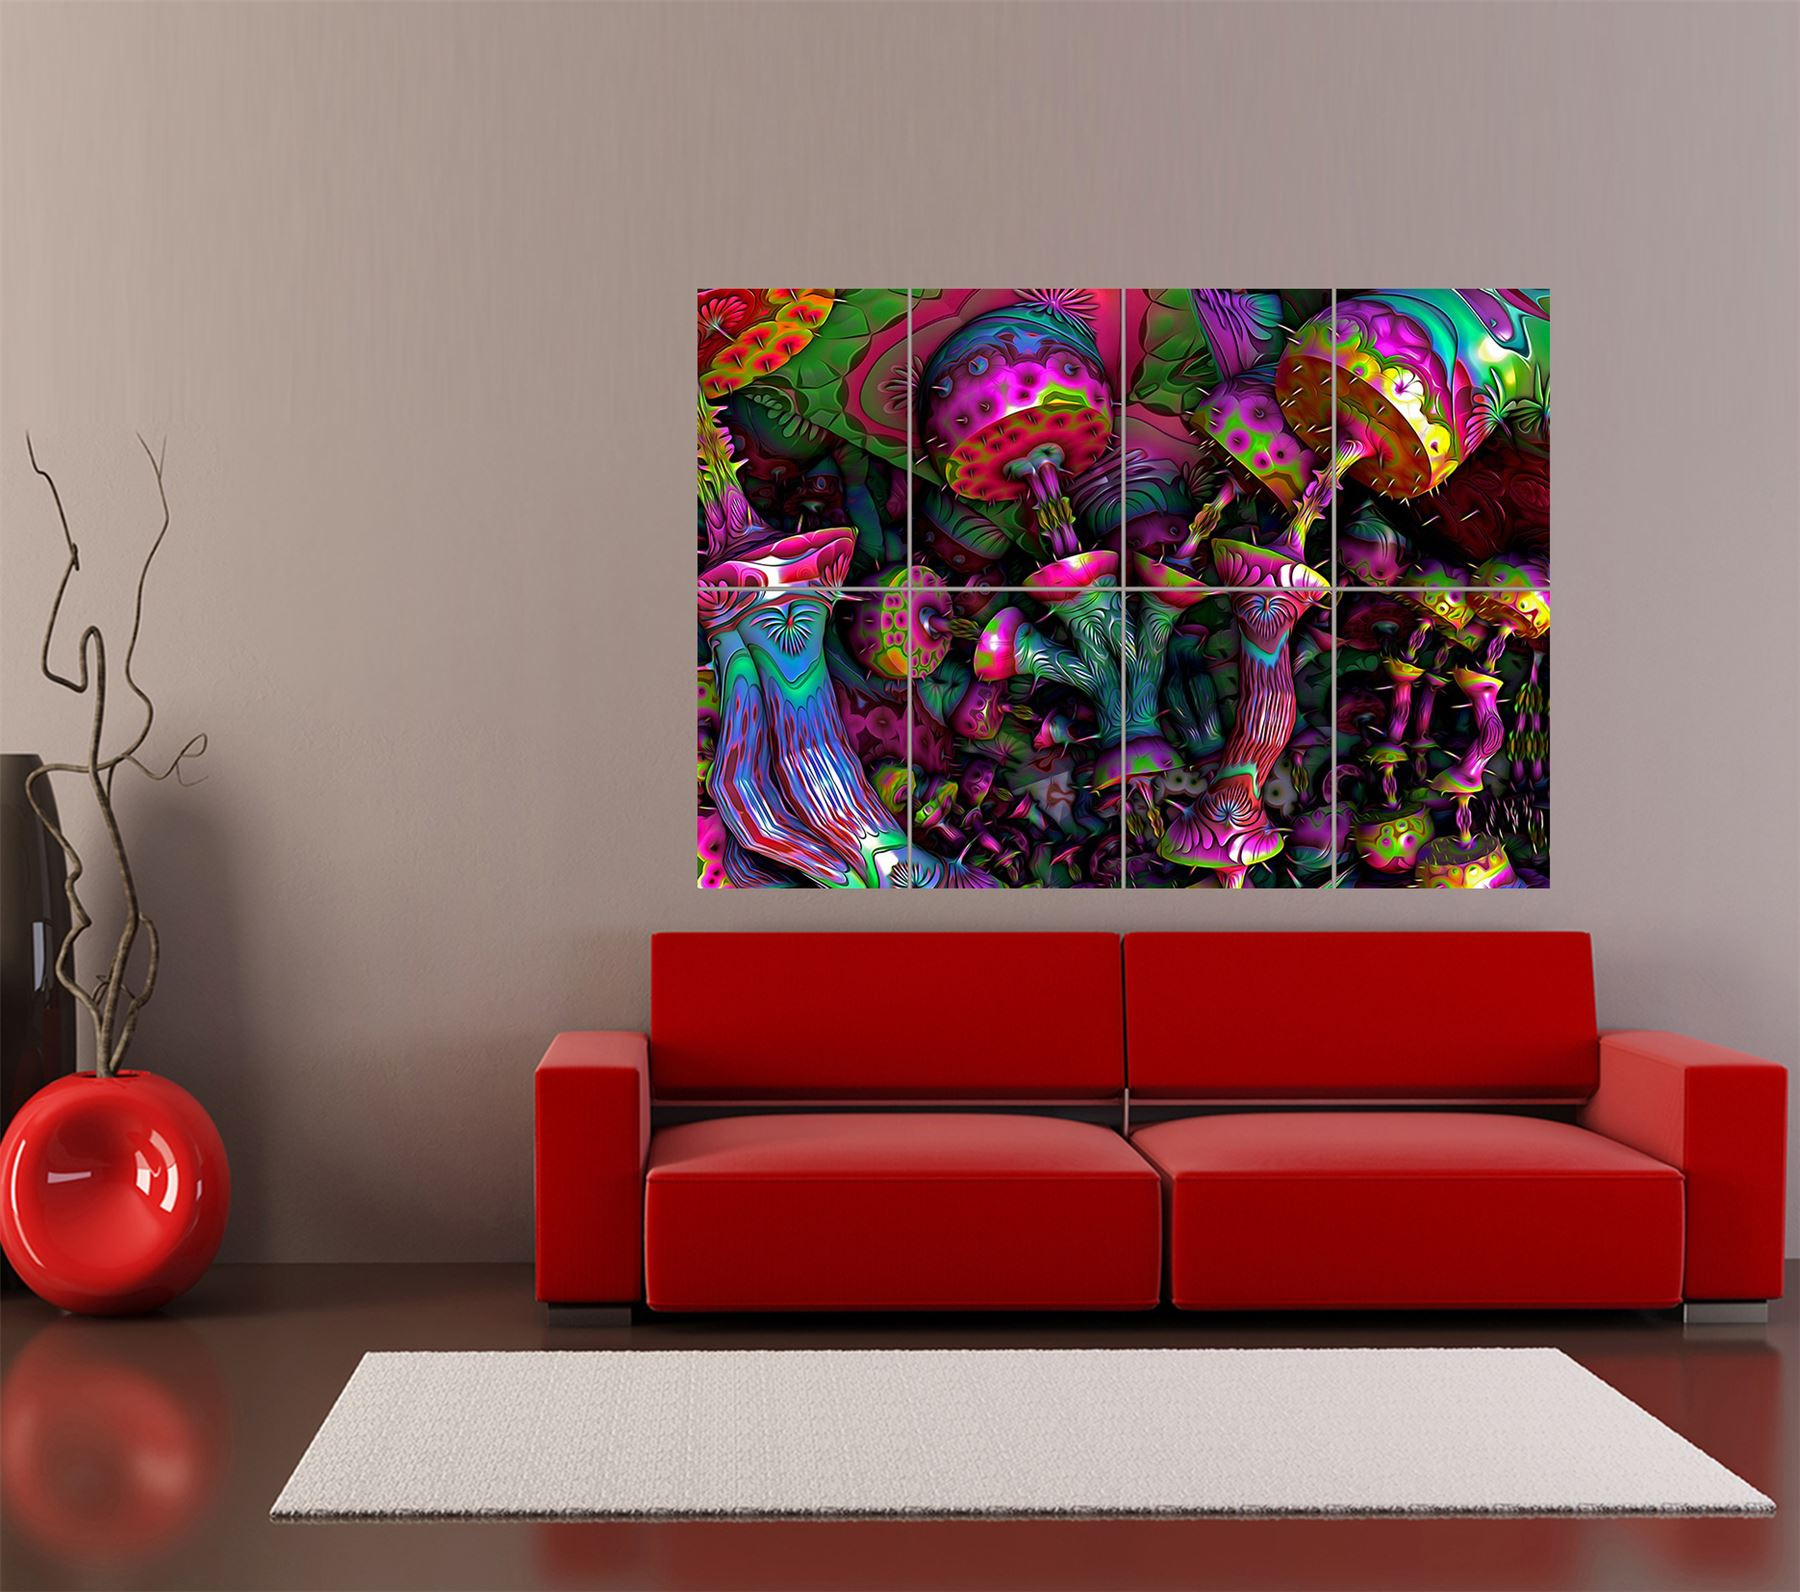 Trippy Home Decor: PSYCHEDELIC TRIPPY ART GIANT ART PRINT HOME DECOR POSTER